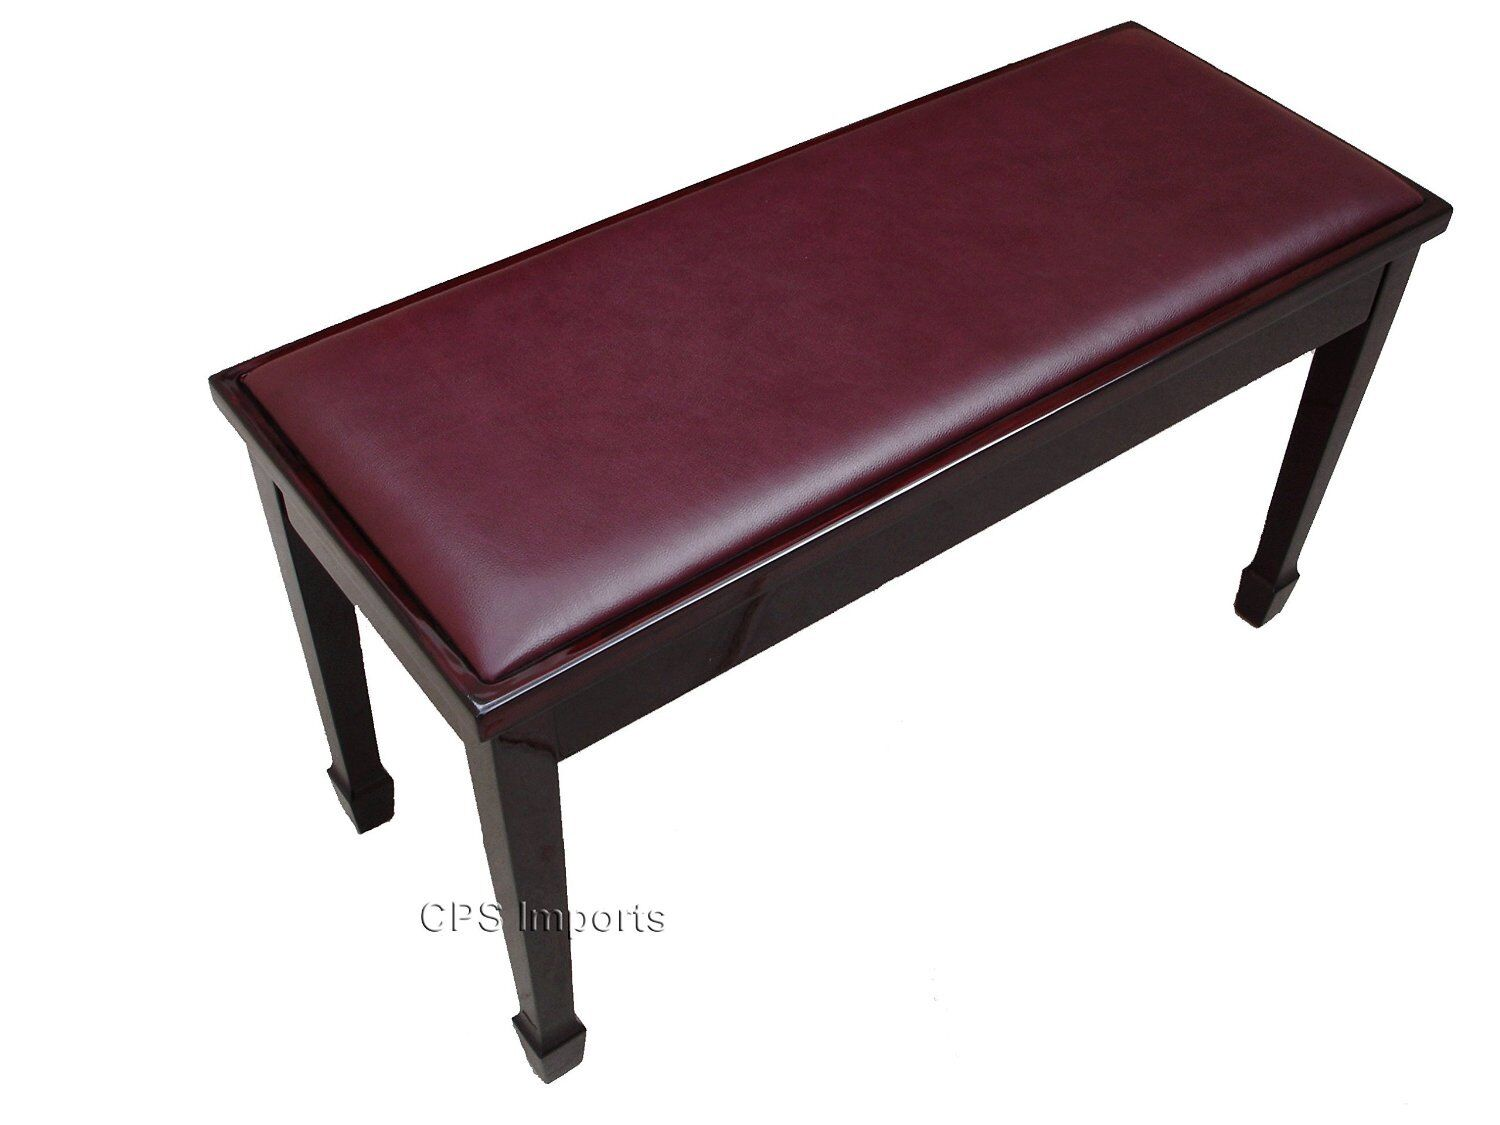 GENUINE LEATHER Mahogany Grand Duet Piano Bench Stool Chair